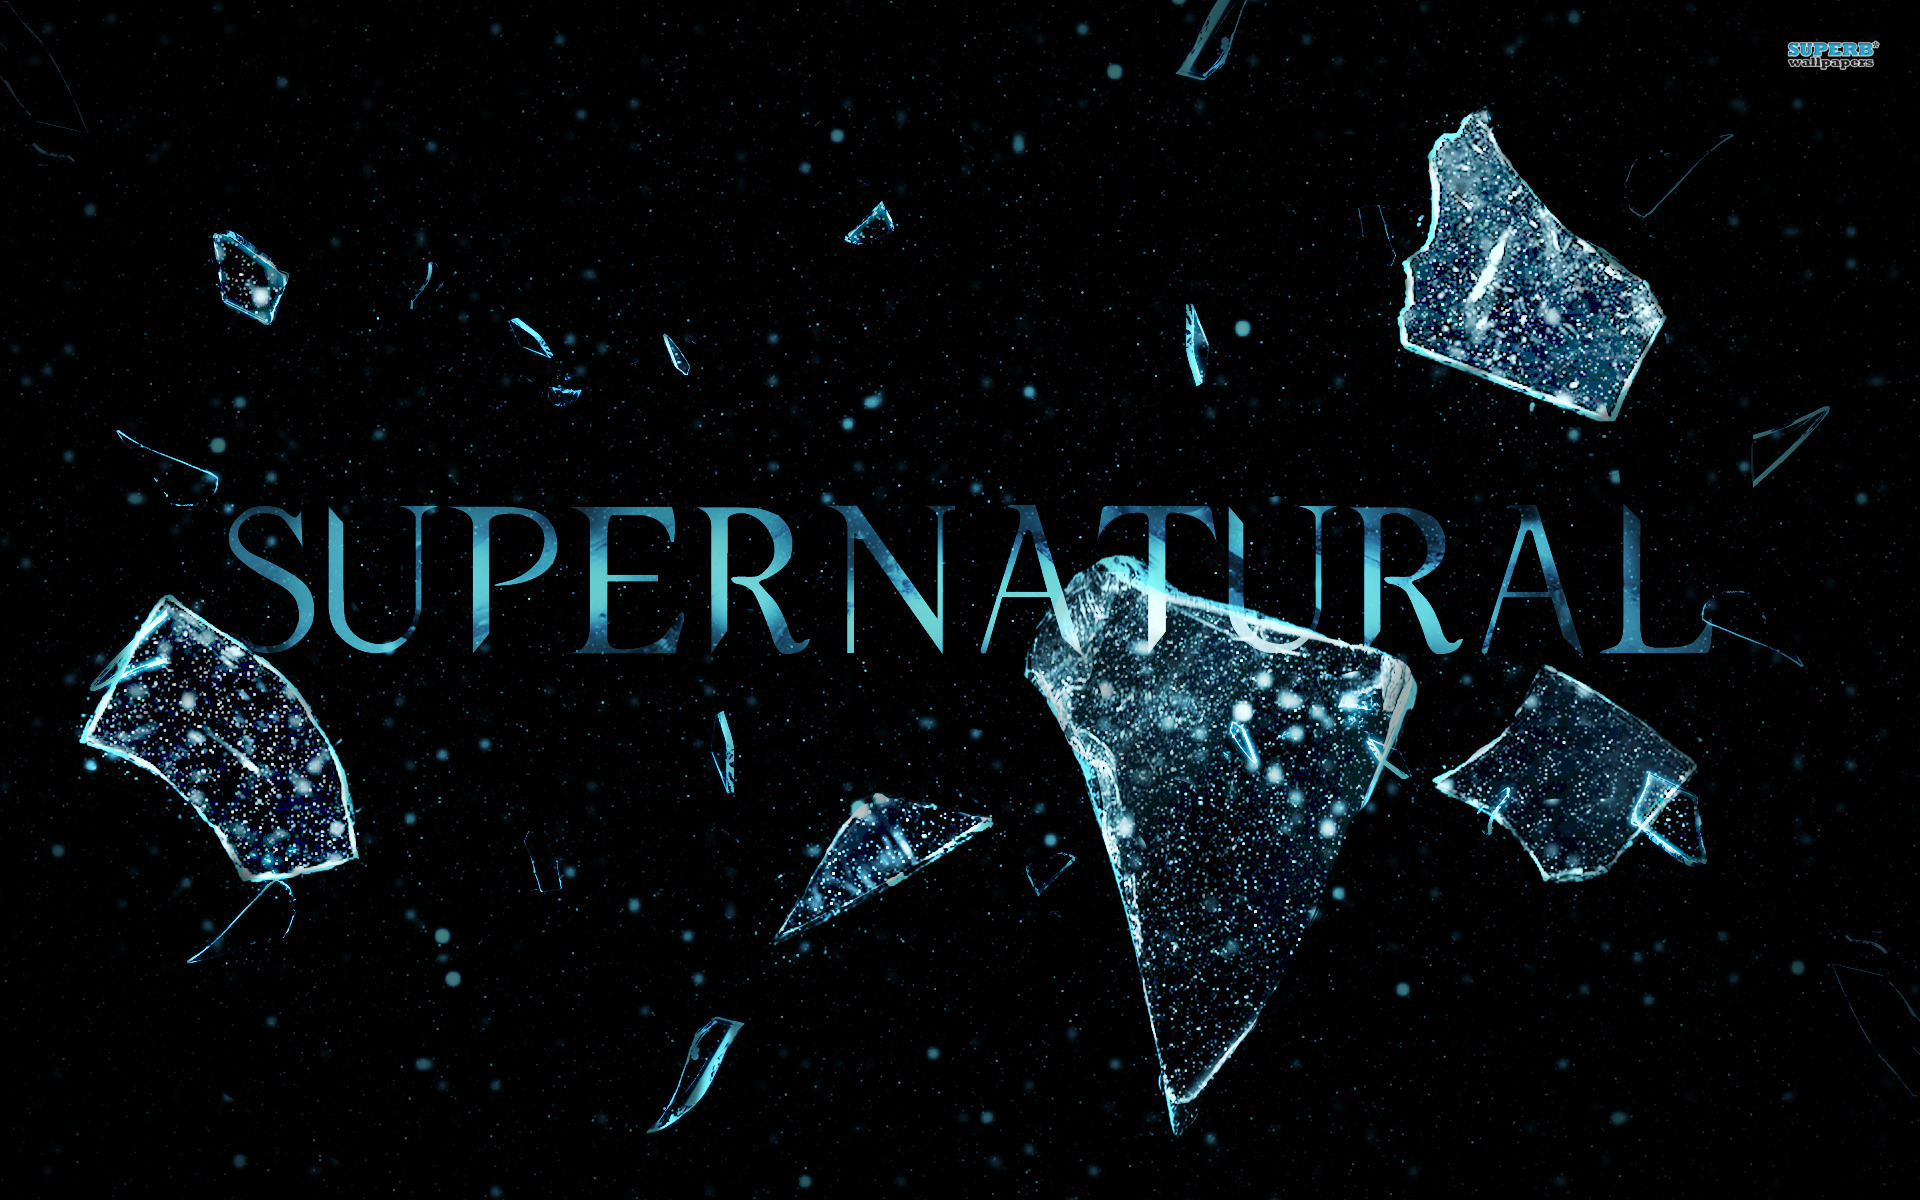 Screensaver from the series Supernatural (Supernatural)